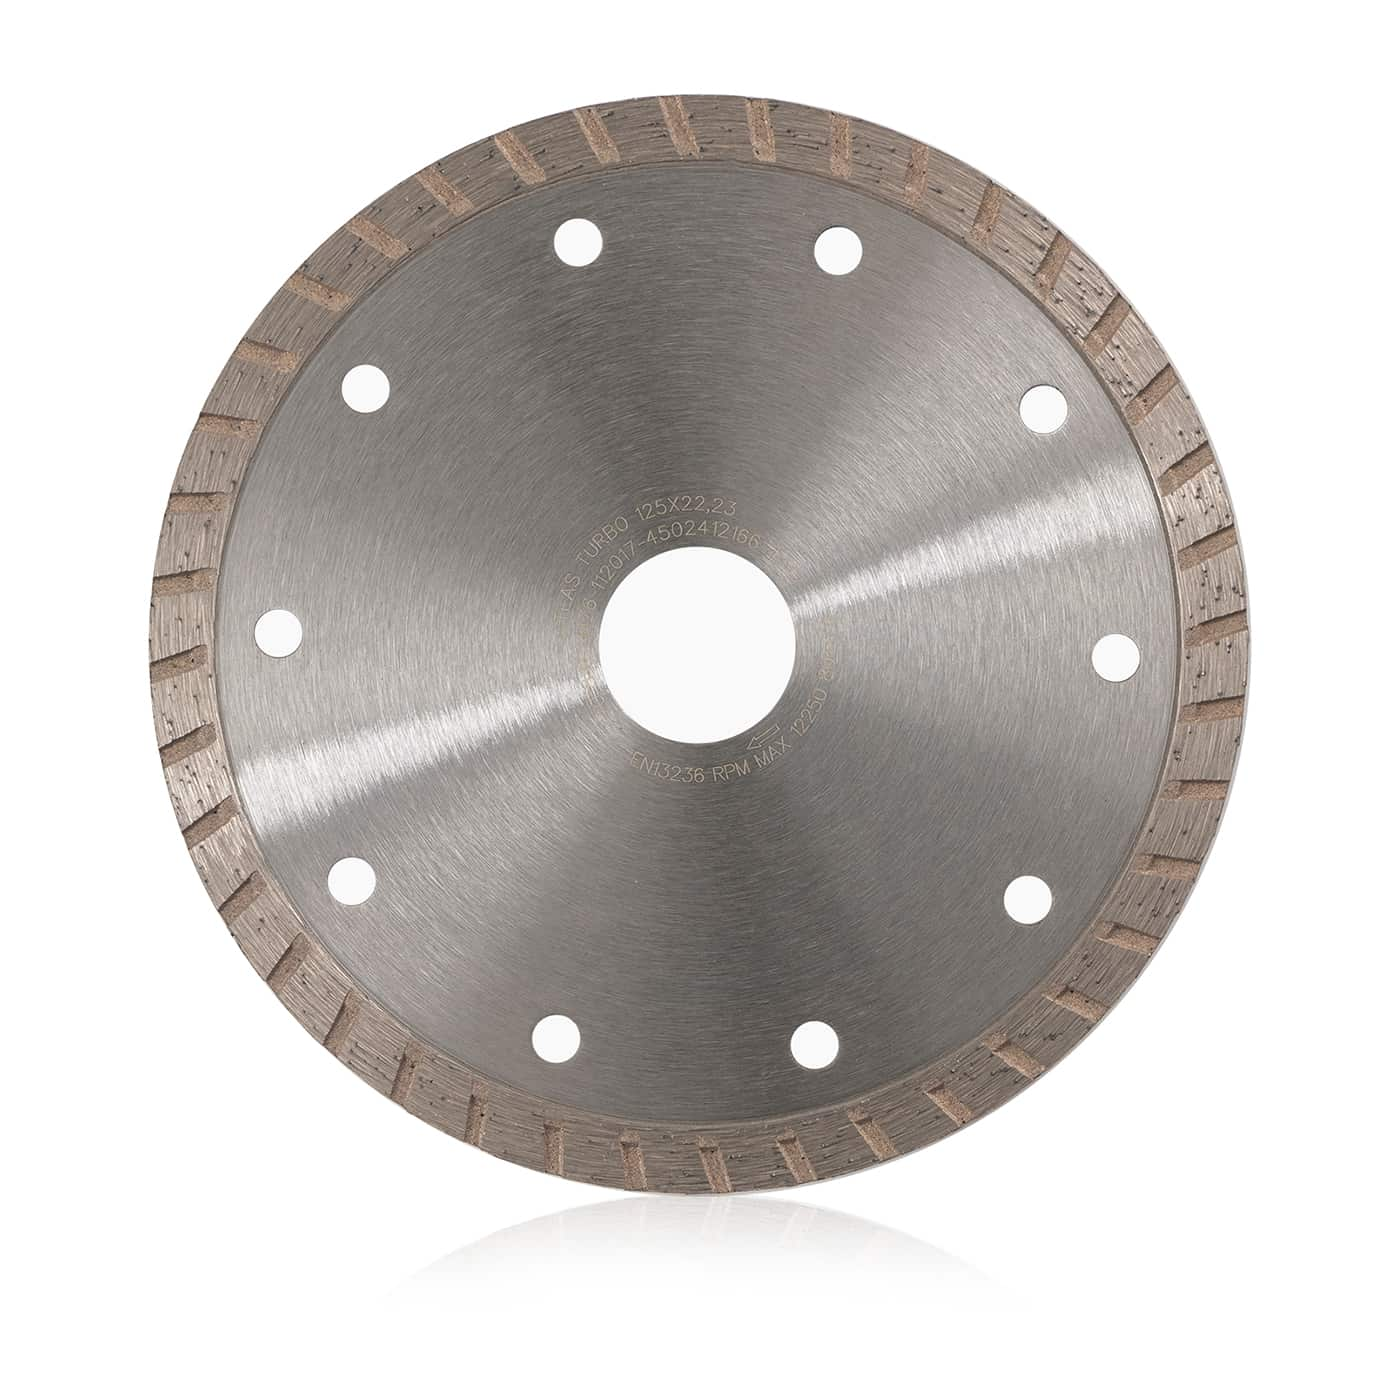 smirdex-916-atlas-universal-diamond-discs,clean cut, fast cut, building materials cutting